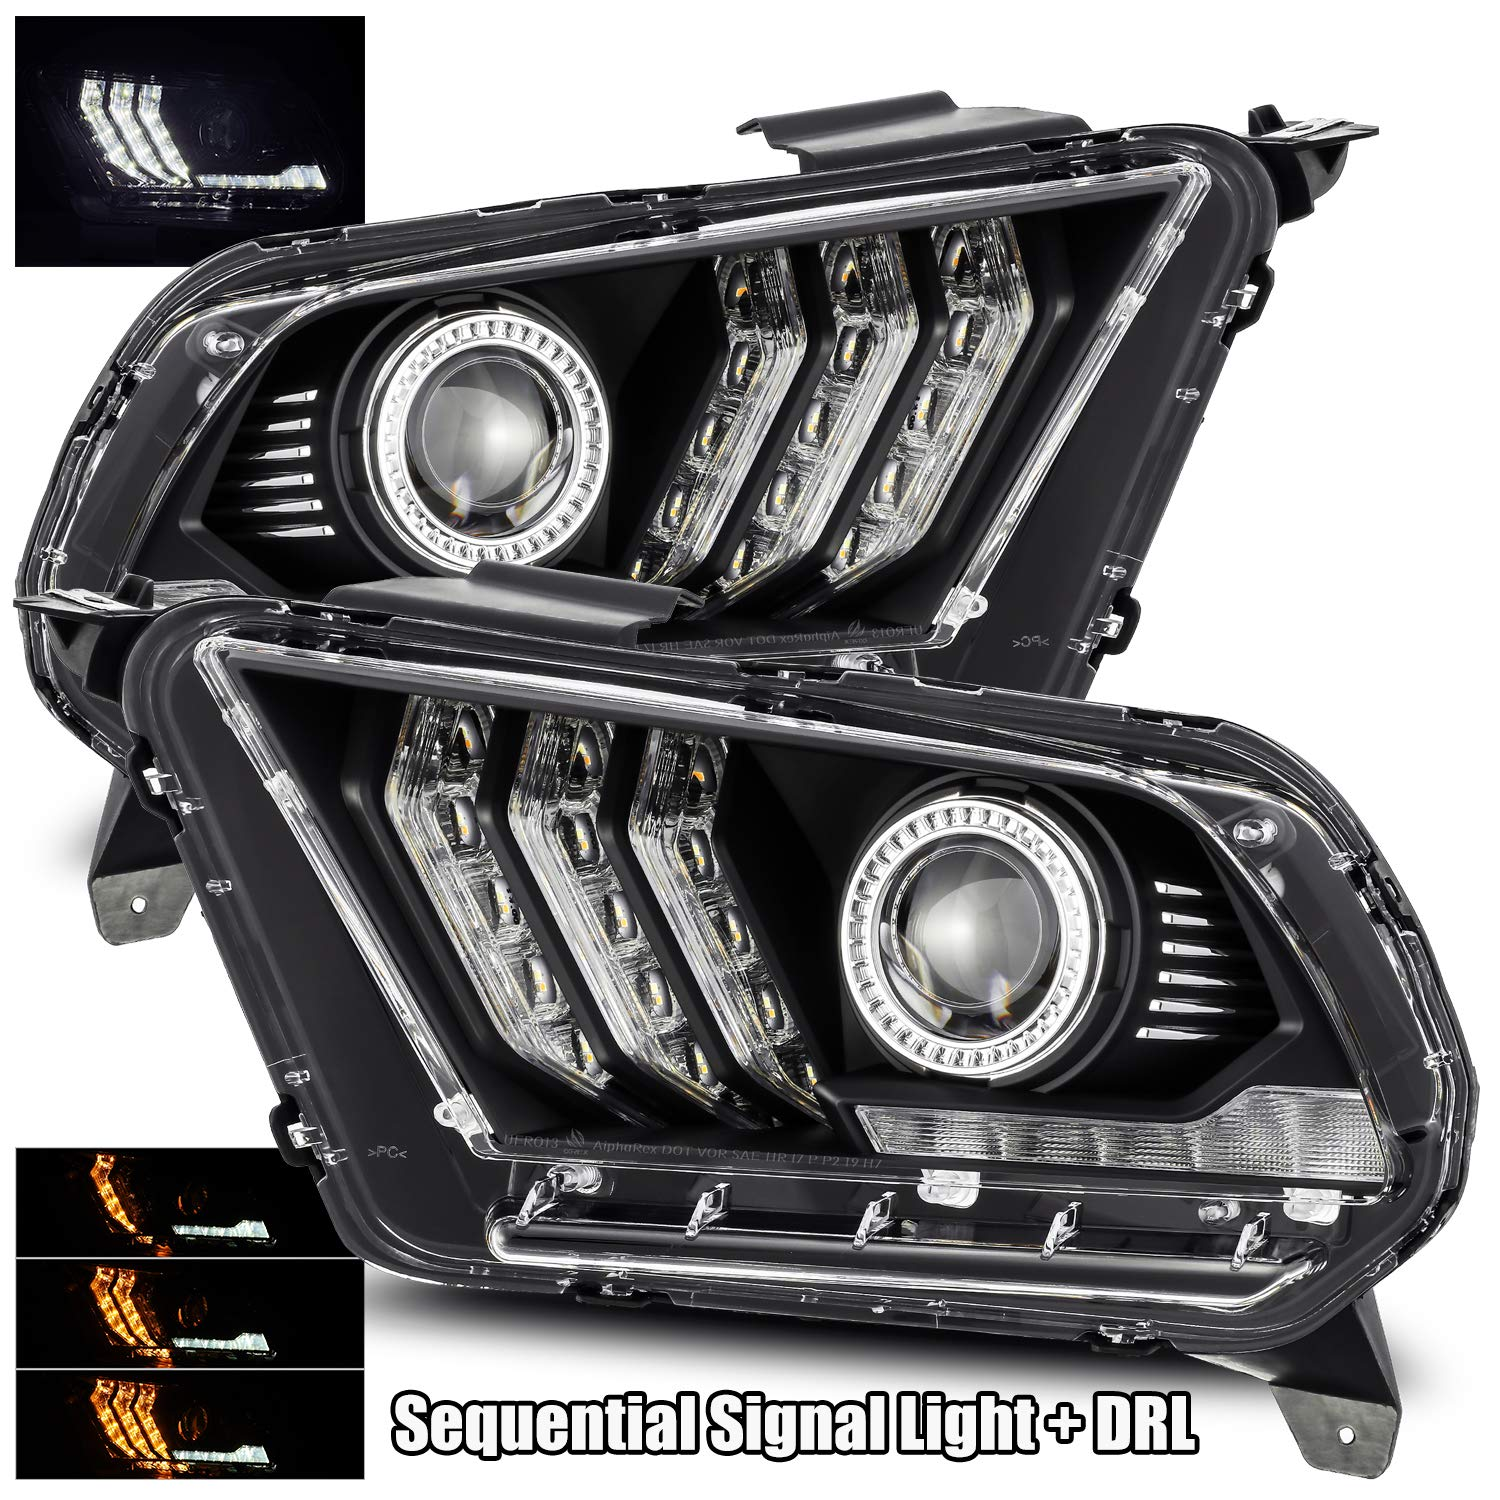 AlphaRex PRO-Series Chrome Fit 10-12 Ford Mustang Halogen Type 6th Gen Look Switchback DRL//Sequential Signal LED Tube Projector Headlights Black